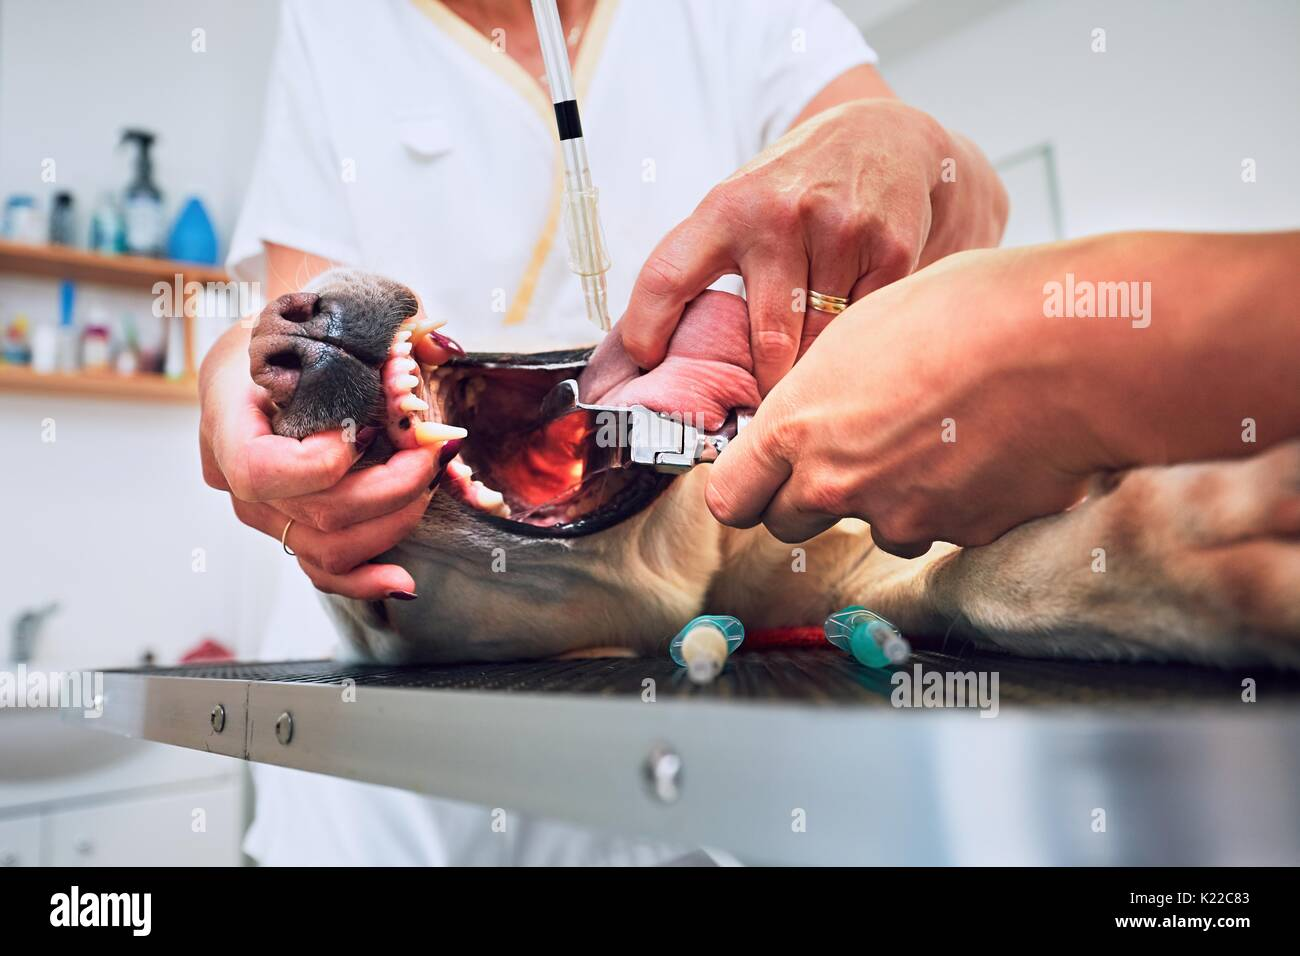 Veterinarian and nurse intubate the diseased dog prior to tumor surgery. - Stock Image